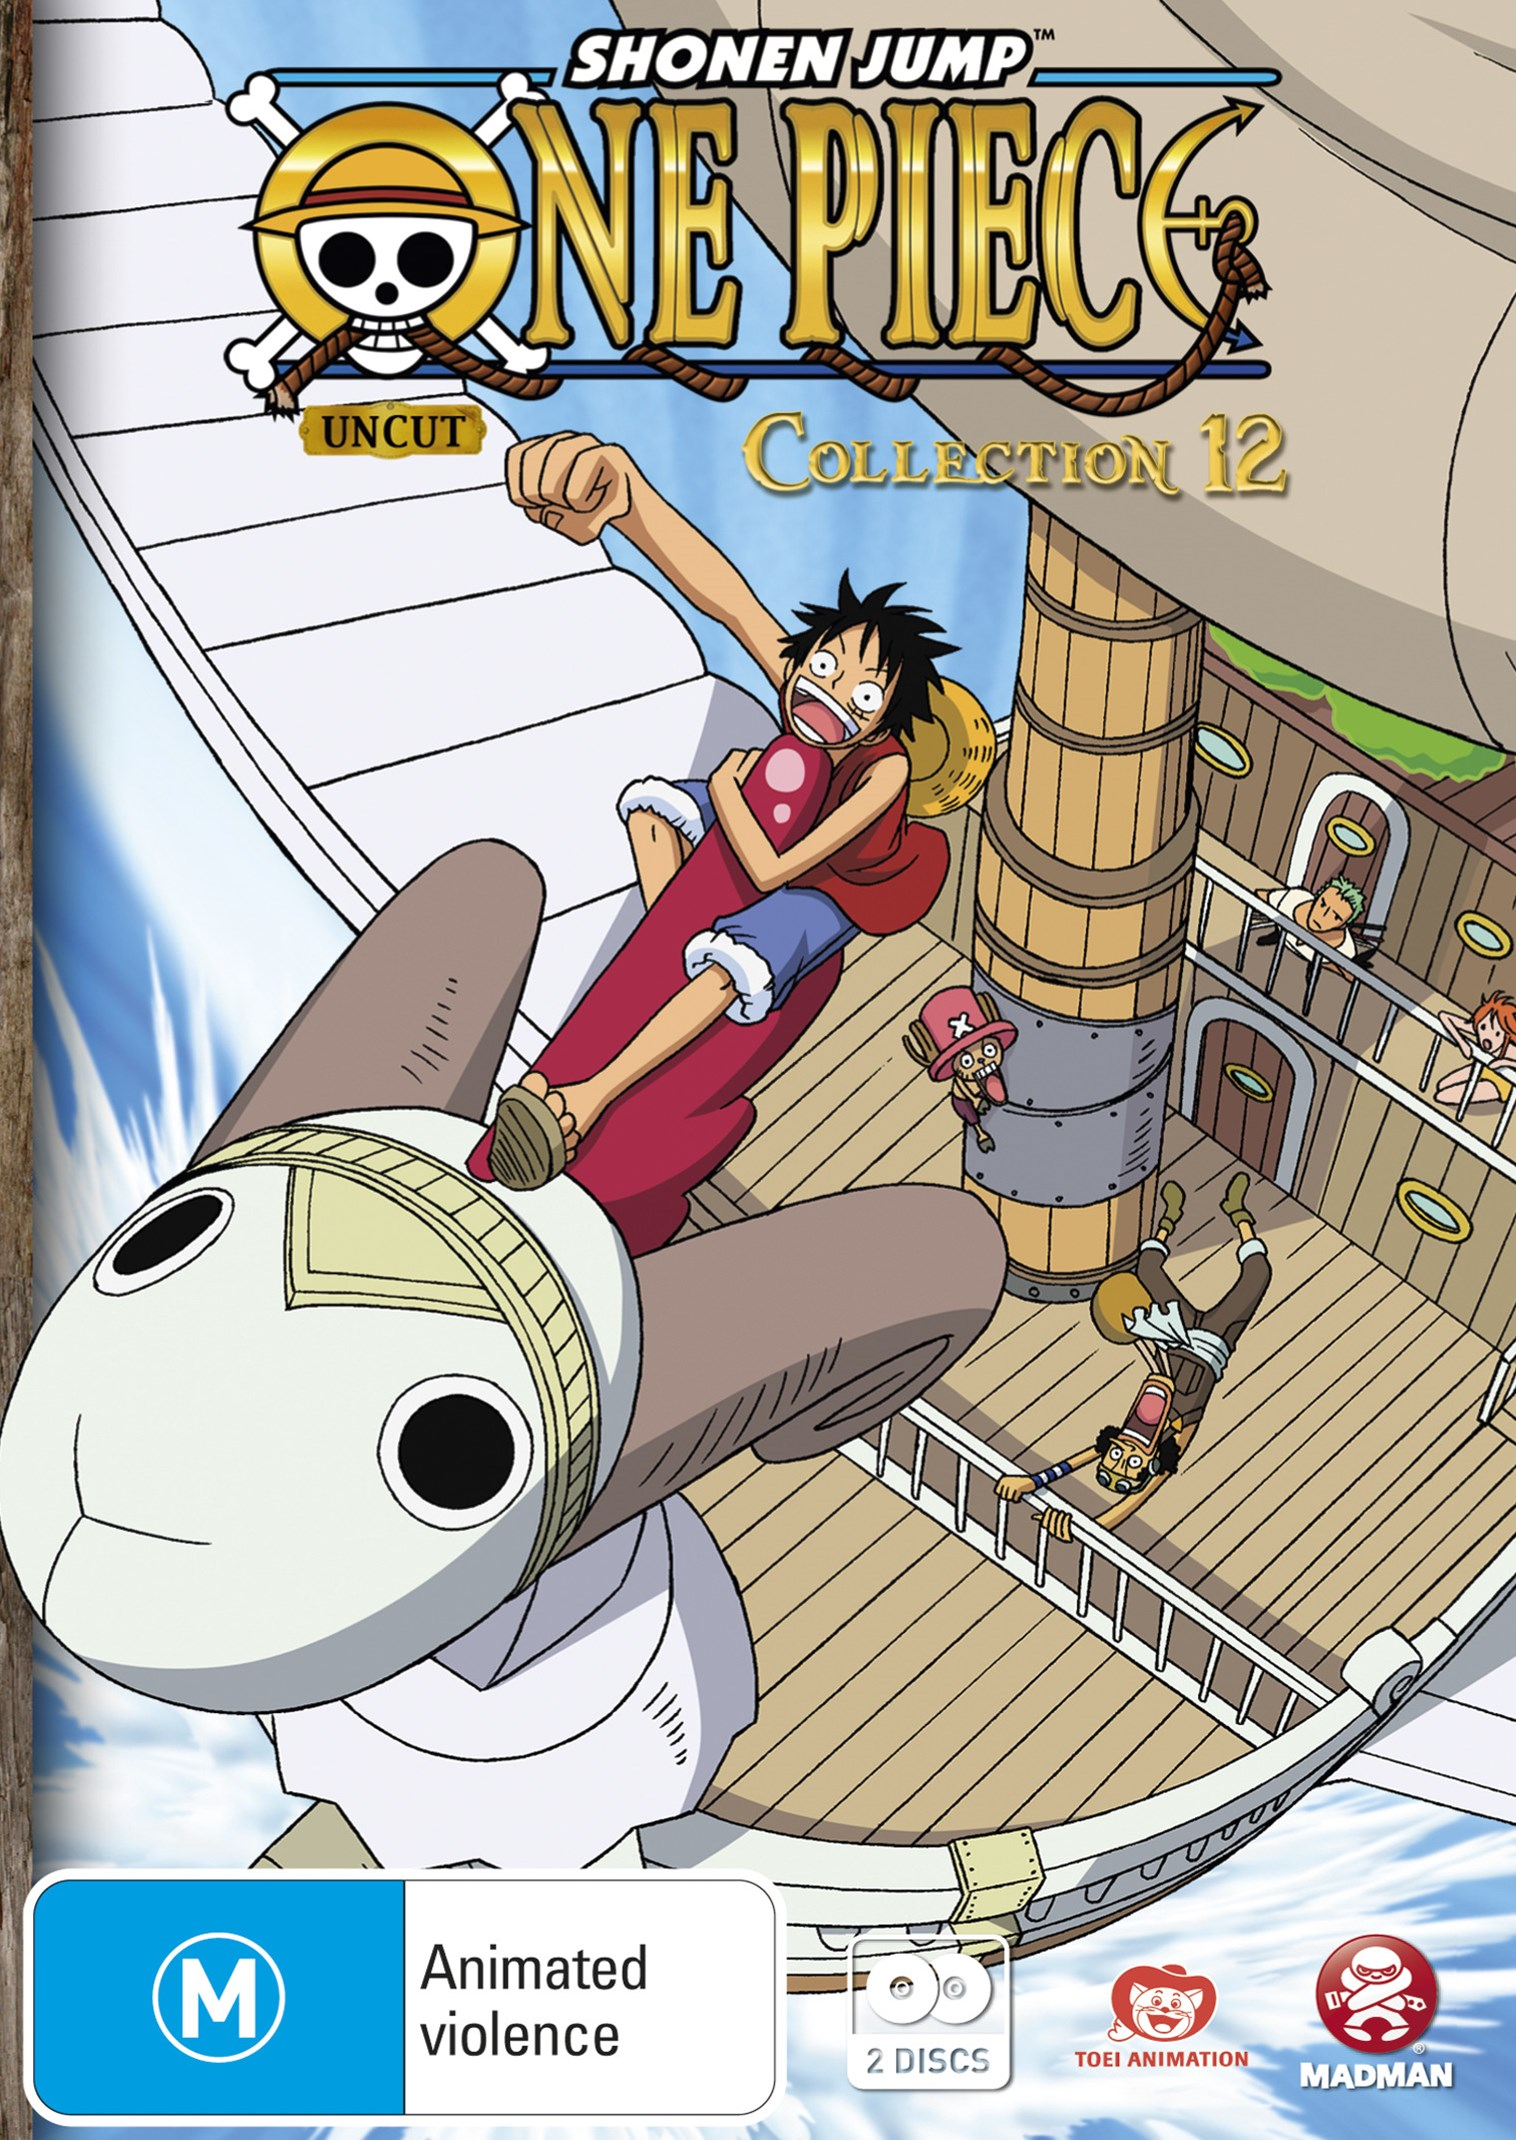 One Piece (Uncut) Collection 12 (Eps 144-156)